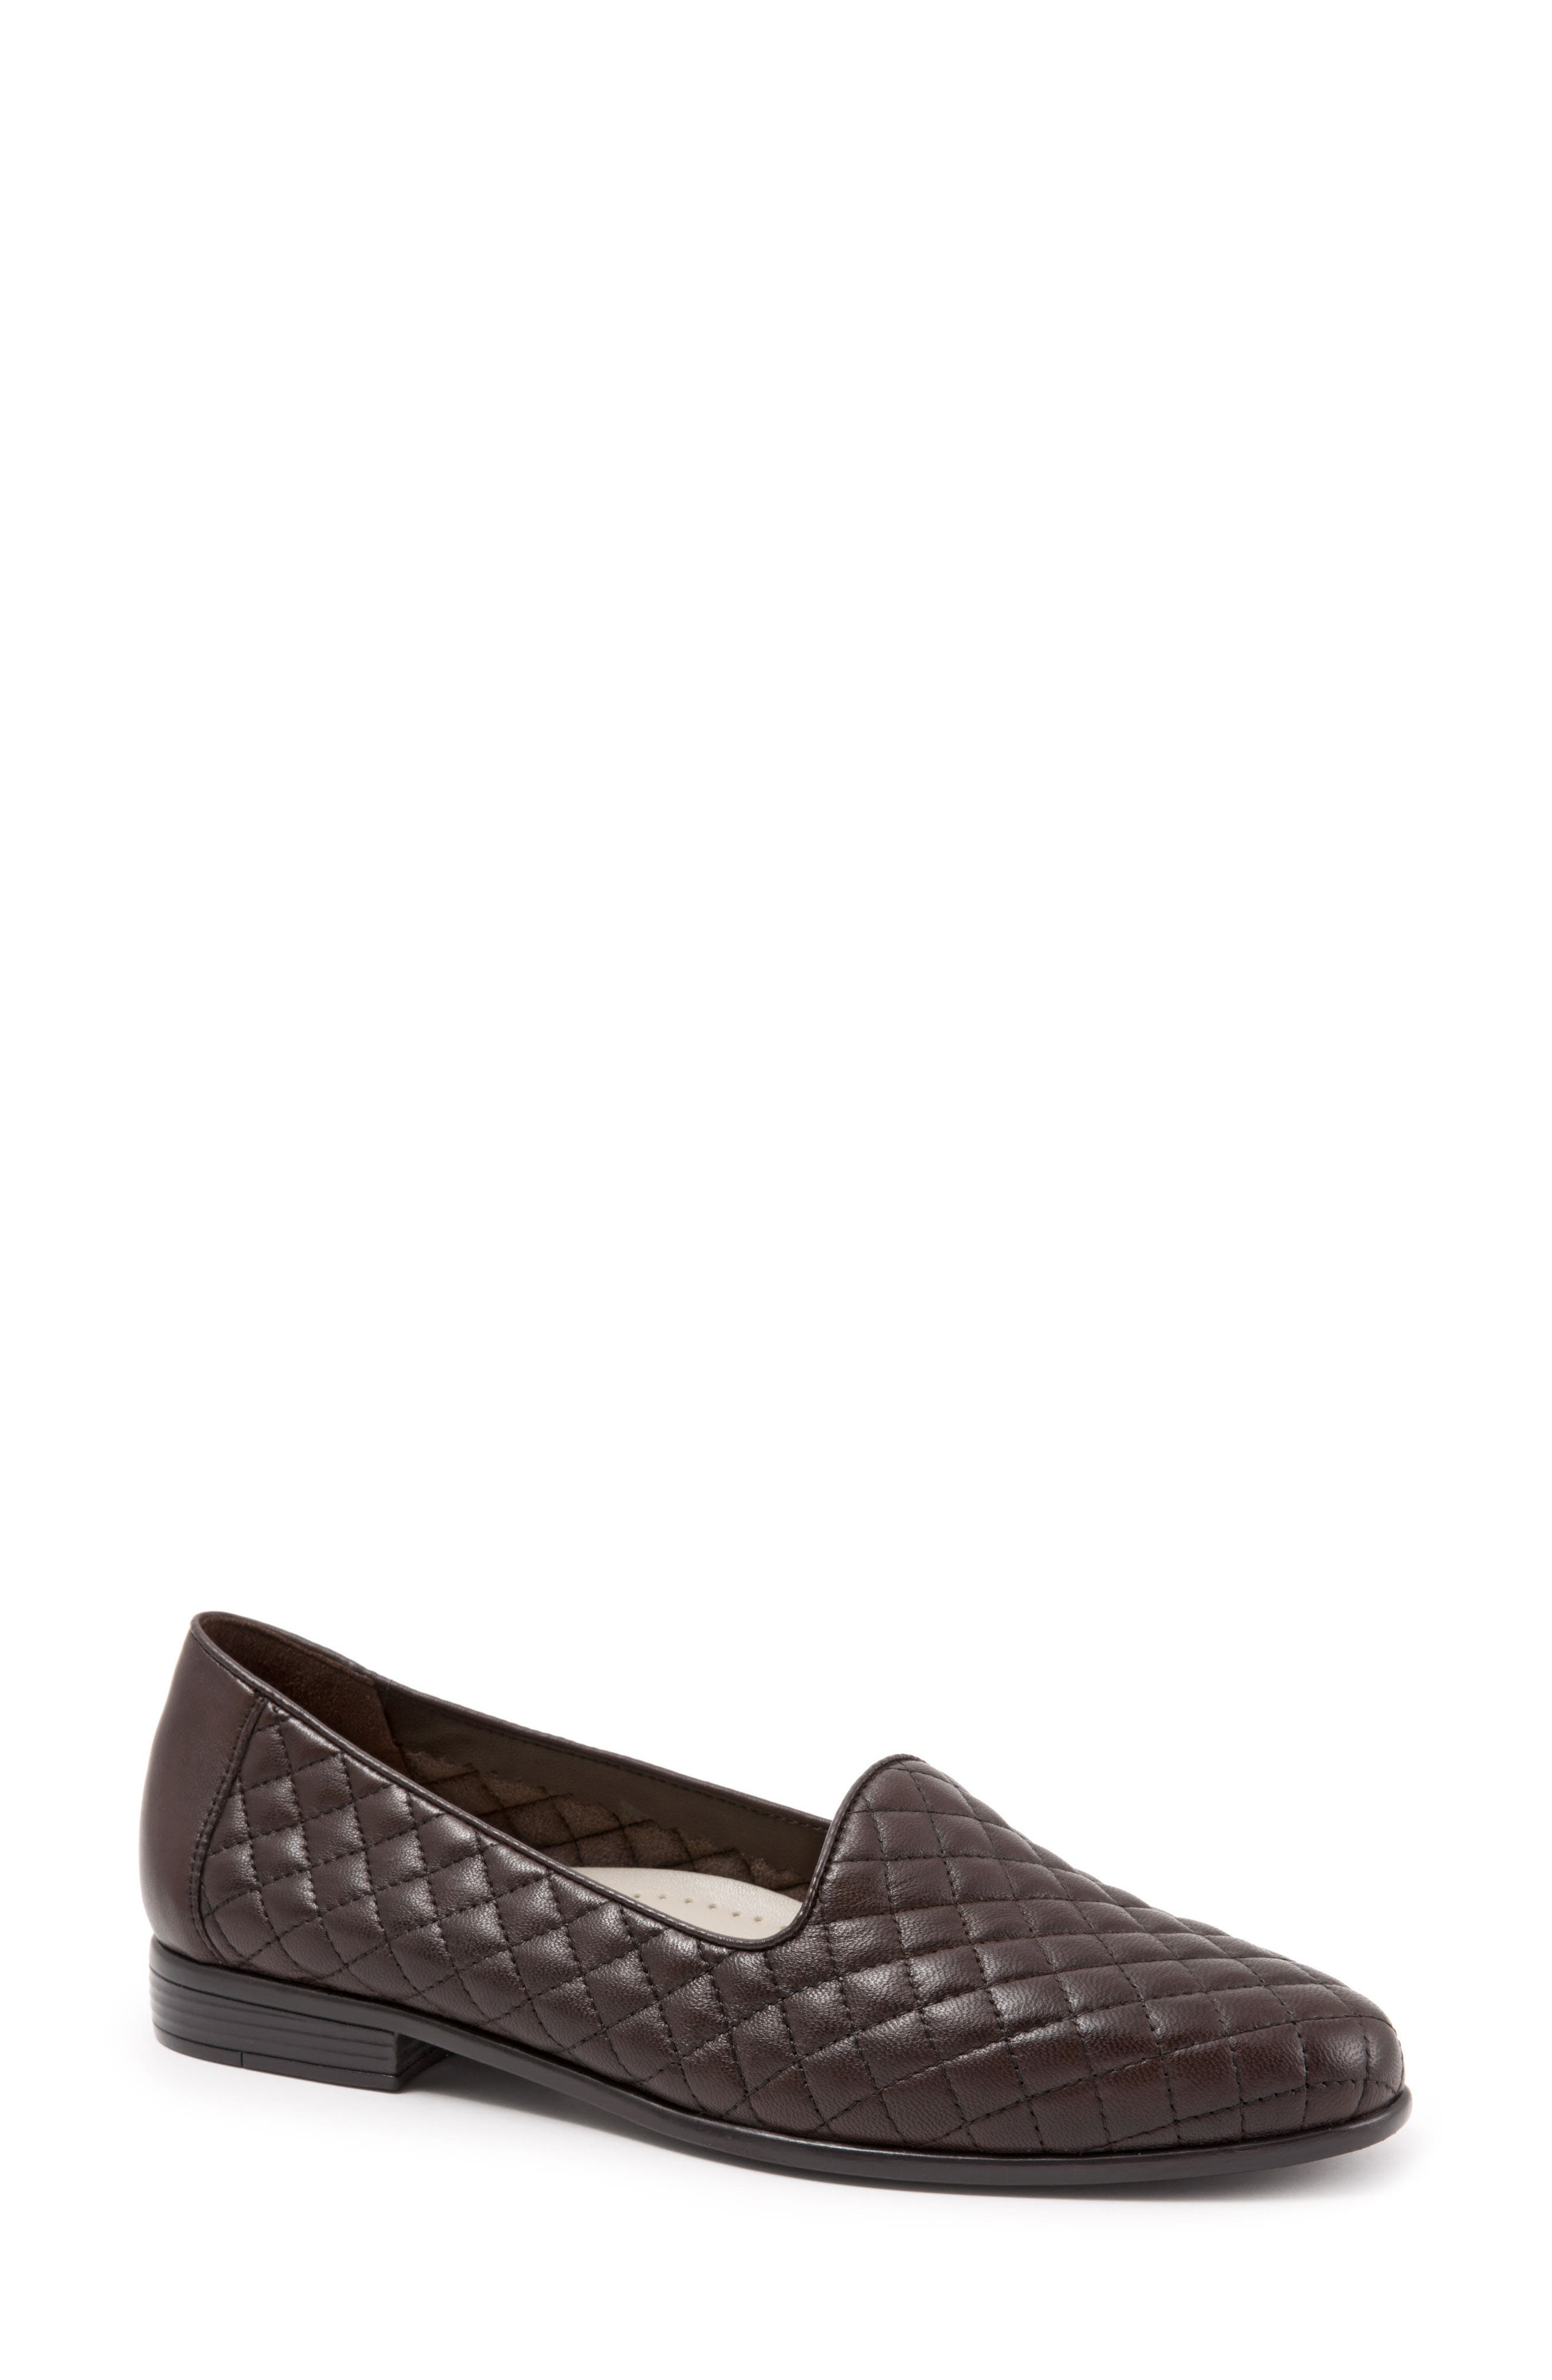 Liz Woven Loafer Flat,                         Main,                         color, Dark Brown Leather